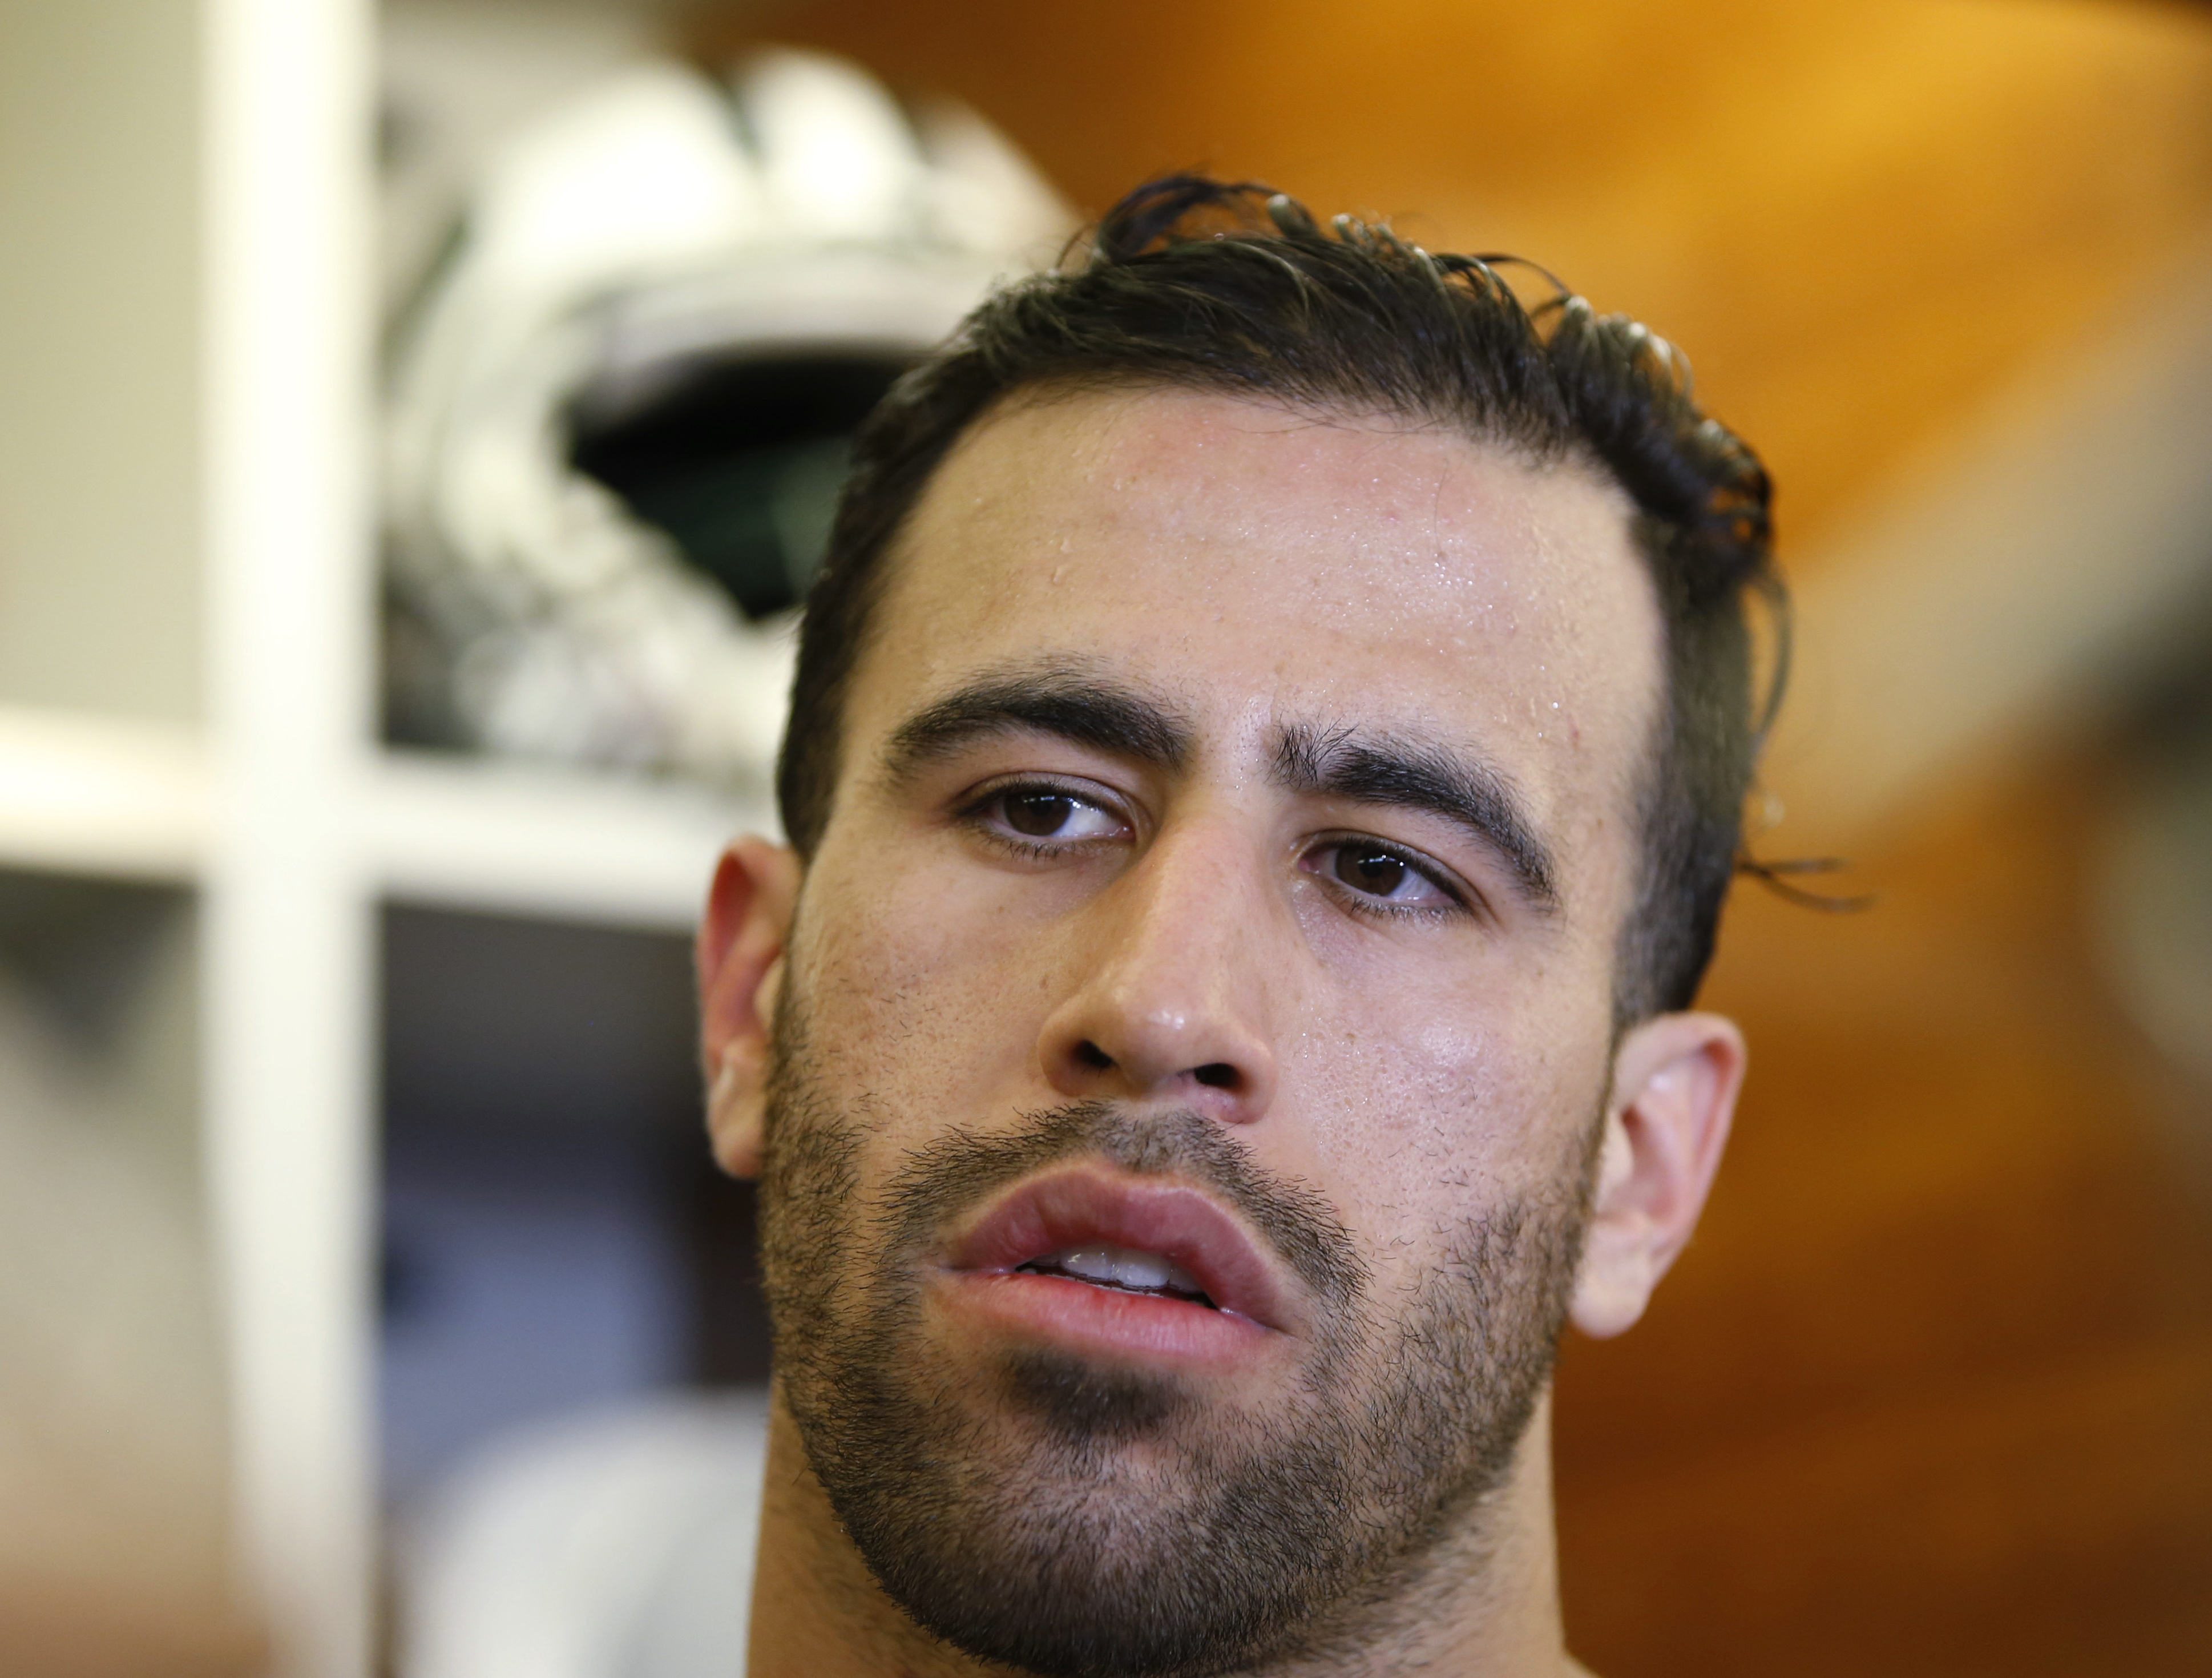 In this Wednesday, May 25, 2016, photo, New York Jets tight end Jace Amaro speaks to reporters after practice at the NFL football team's training facility in Florham Park, N.J. New York drafted Amaro in the second round in 2014 out of Texas Tech/ With his